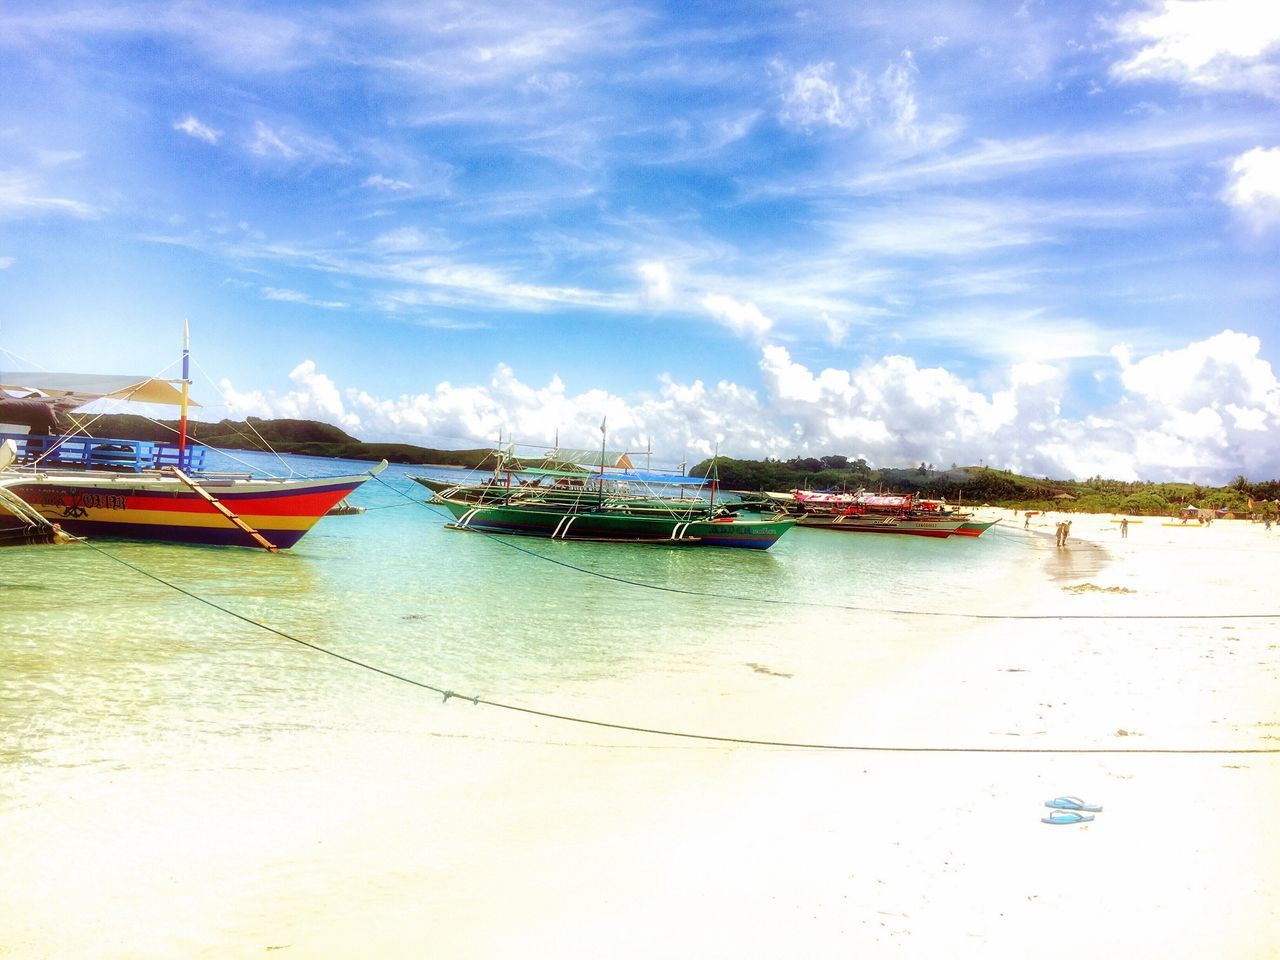 Color of nature EyeEm Nature Lover TravelPhilippines Eyeem Philippines Transportation Nautical Vessel Sky Mode Of Transport Moored Water Nature Sea No People Day Outdoors Outrigger